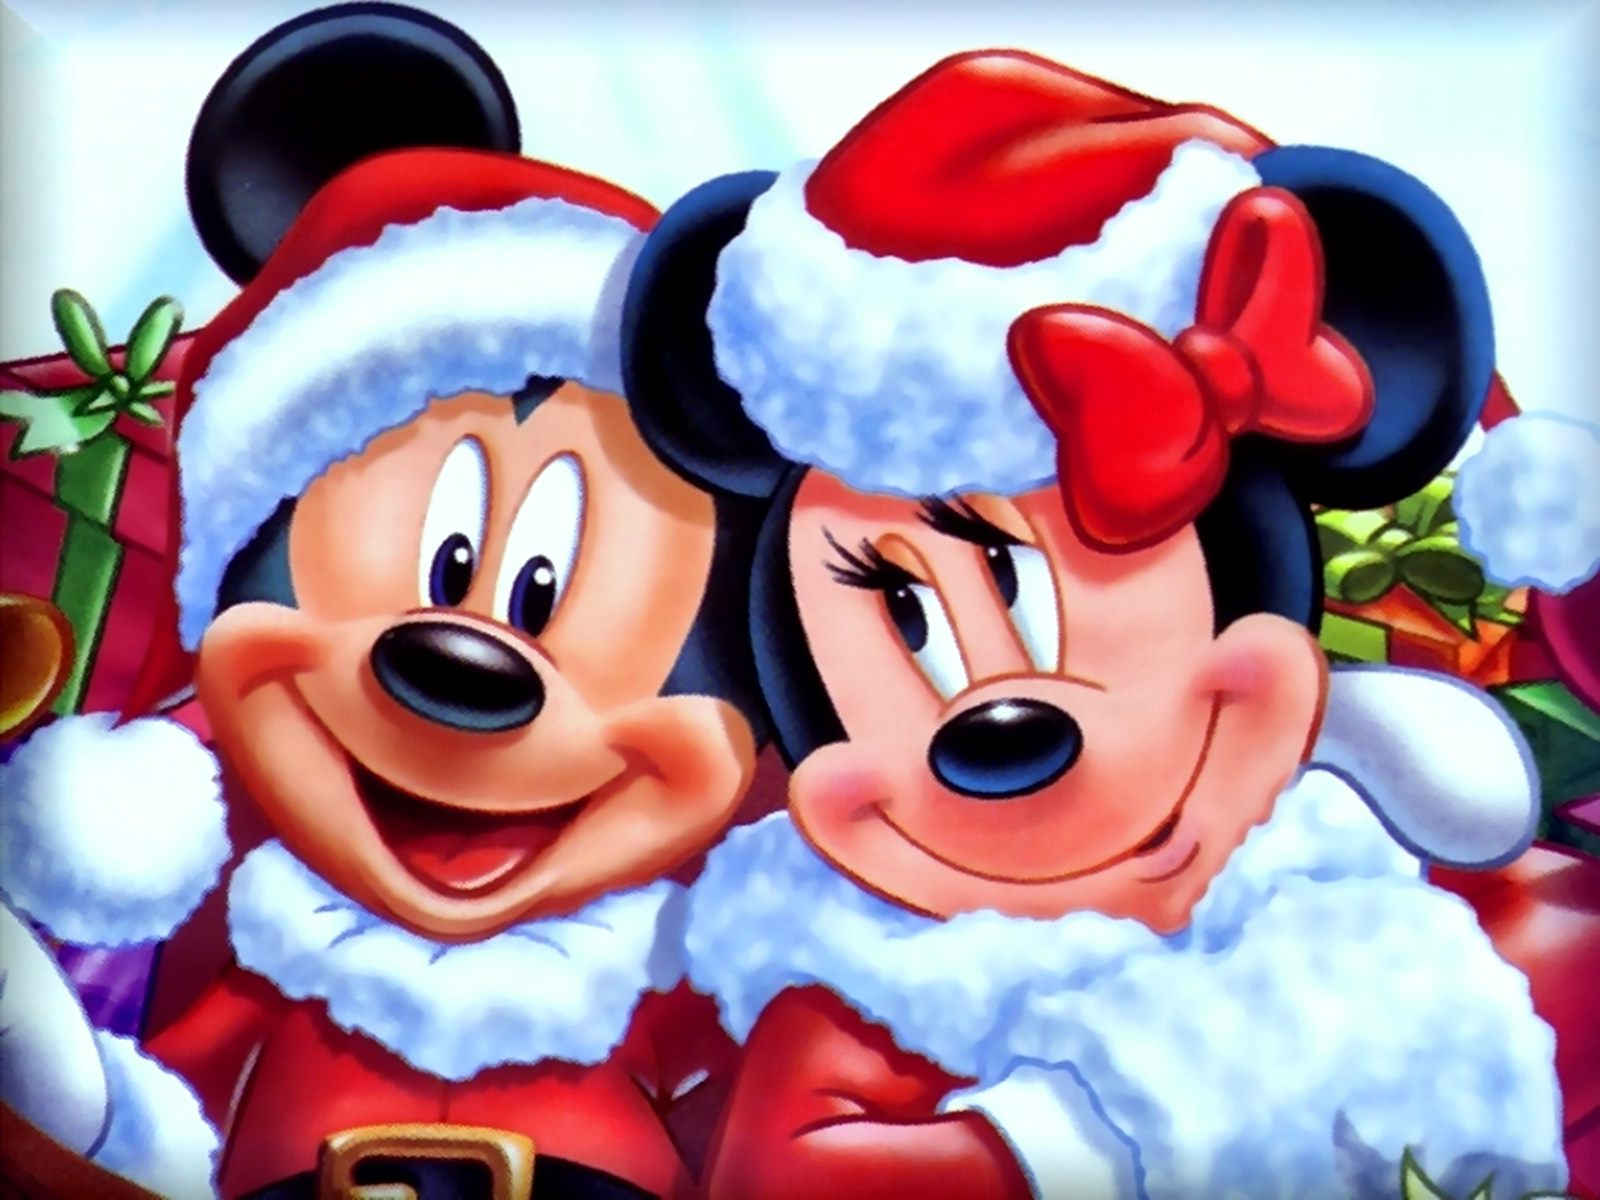 Beautiful Quotes Wallpaper For Facebook Download Mickey And Minnie Christmas Wallpaper Gallery